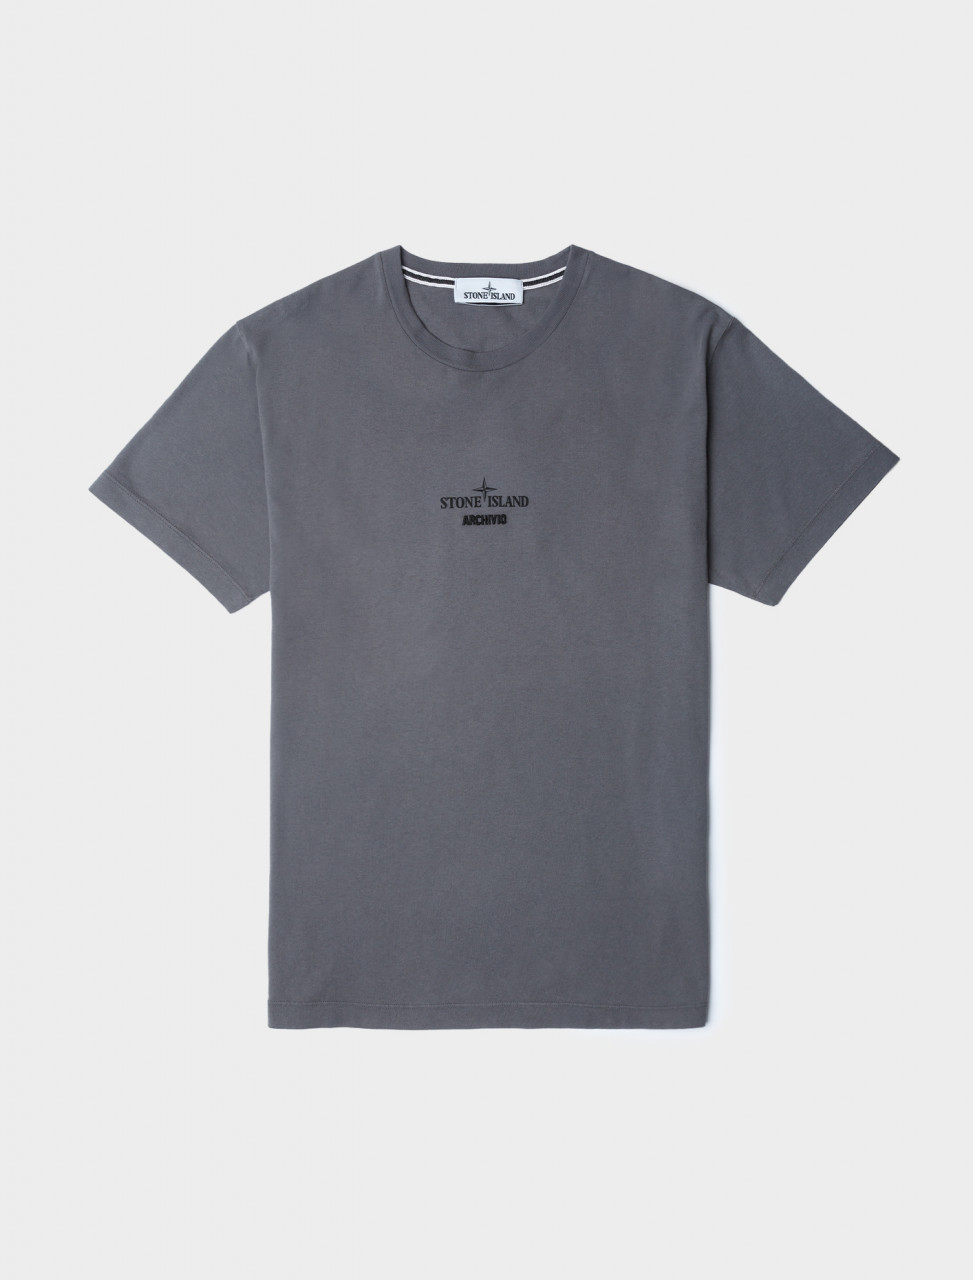 Archivio Short Sleeve T-Shirt in Pewter